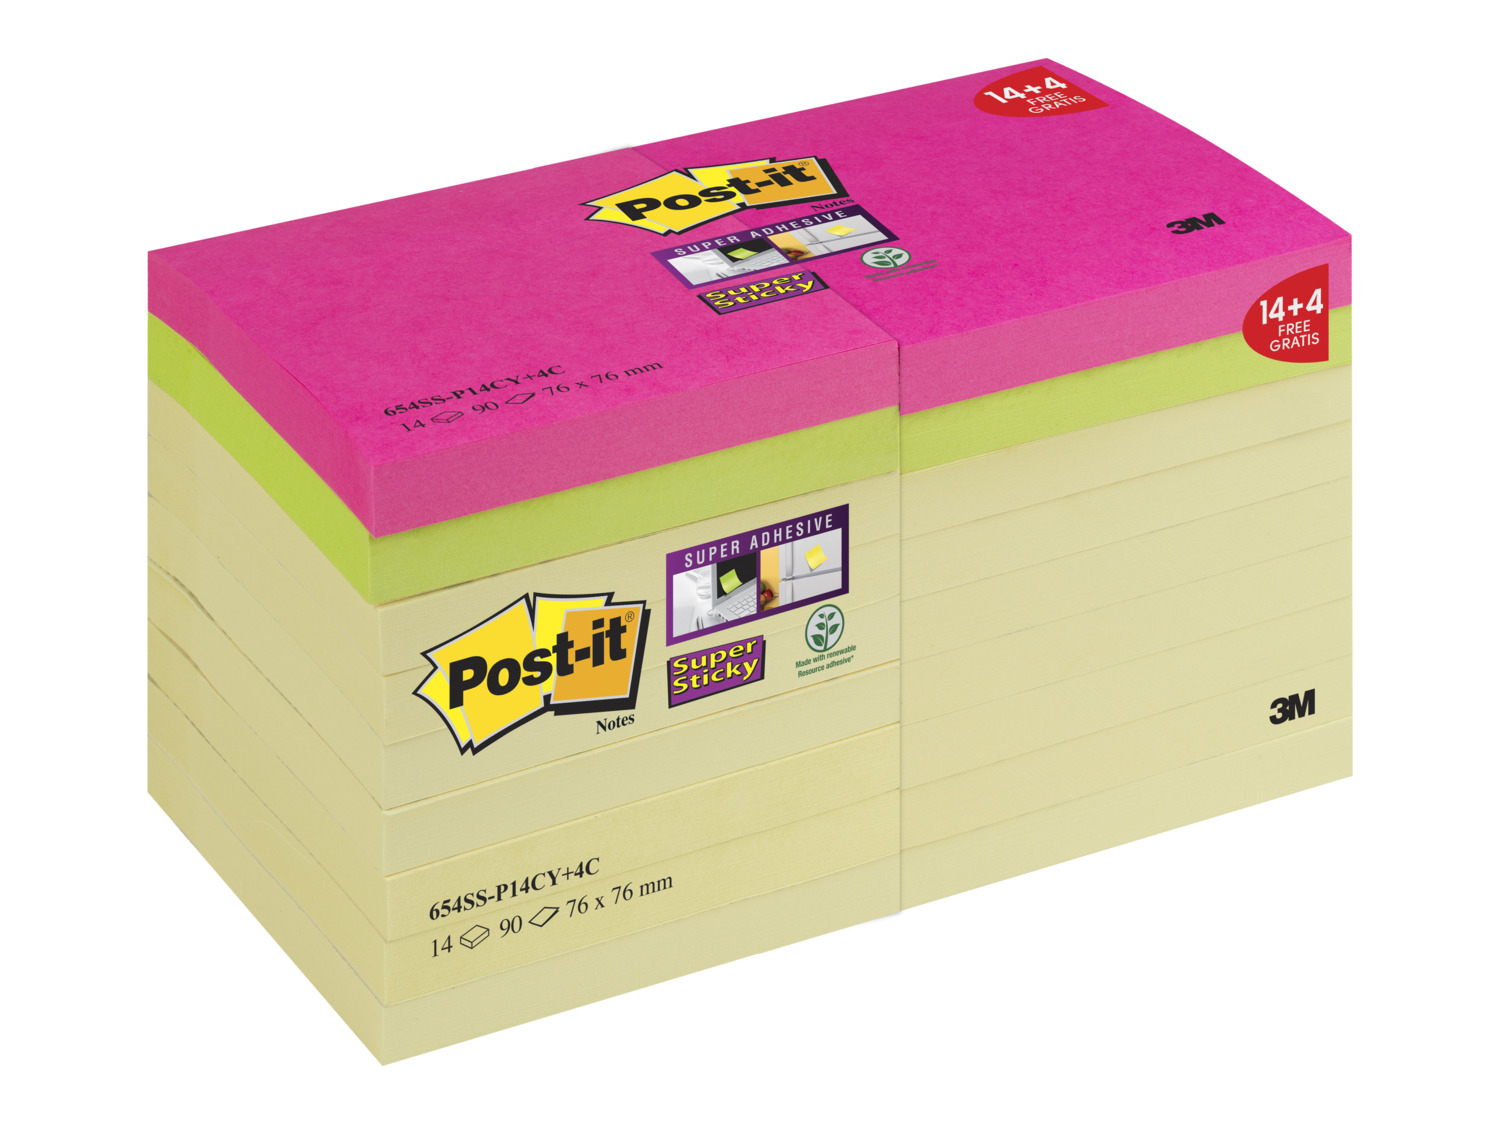 Super Sticky Post-it Super Sticky Notes 76x76mm Promo Pack 14 plus 4 Free